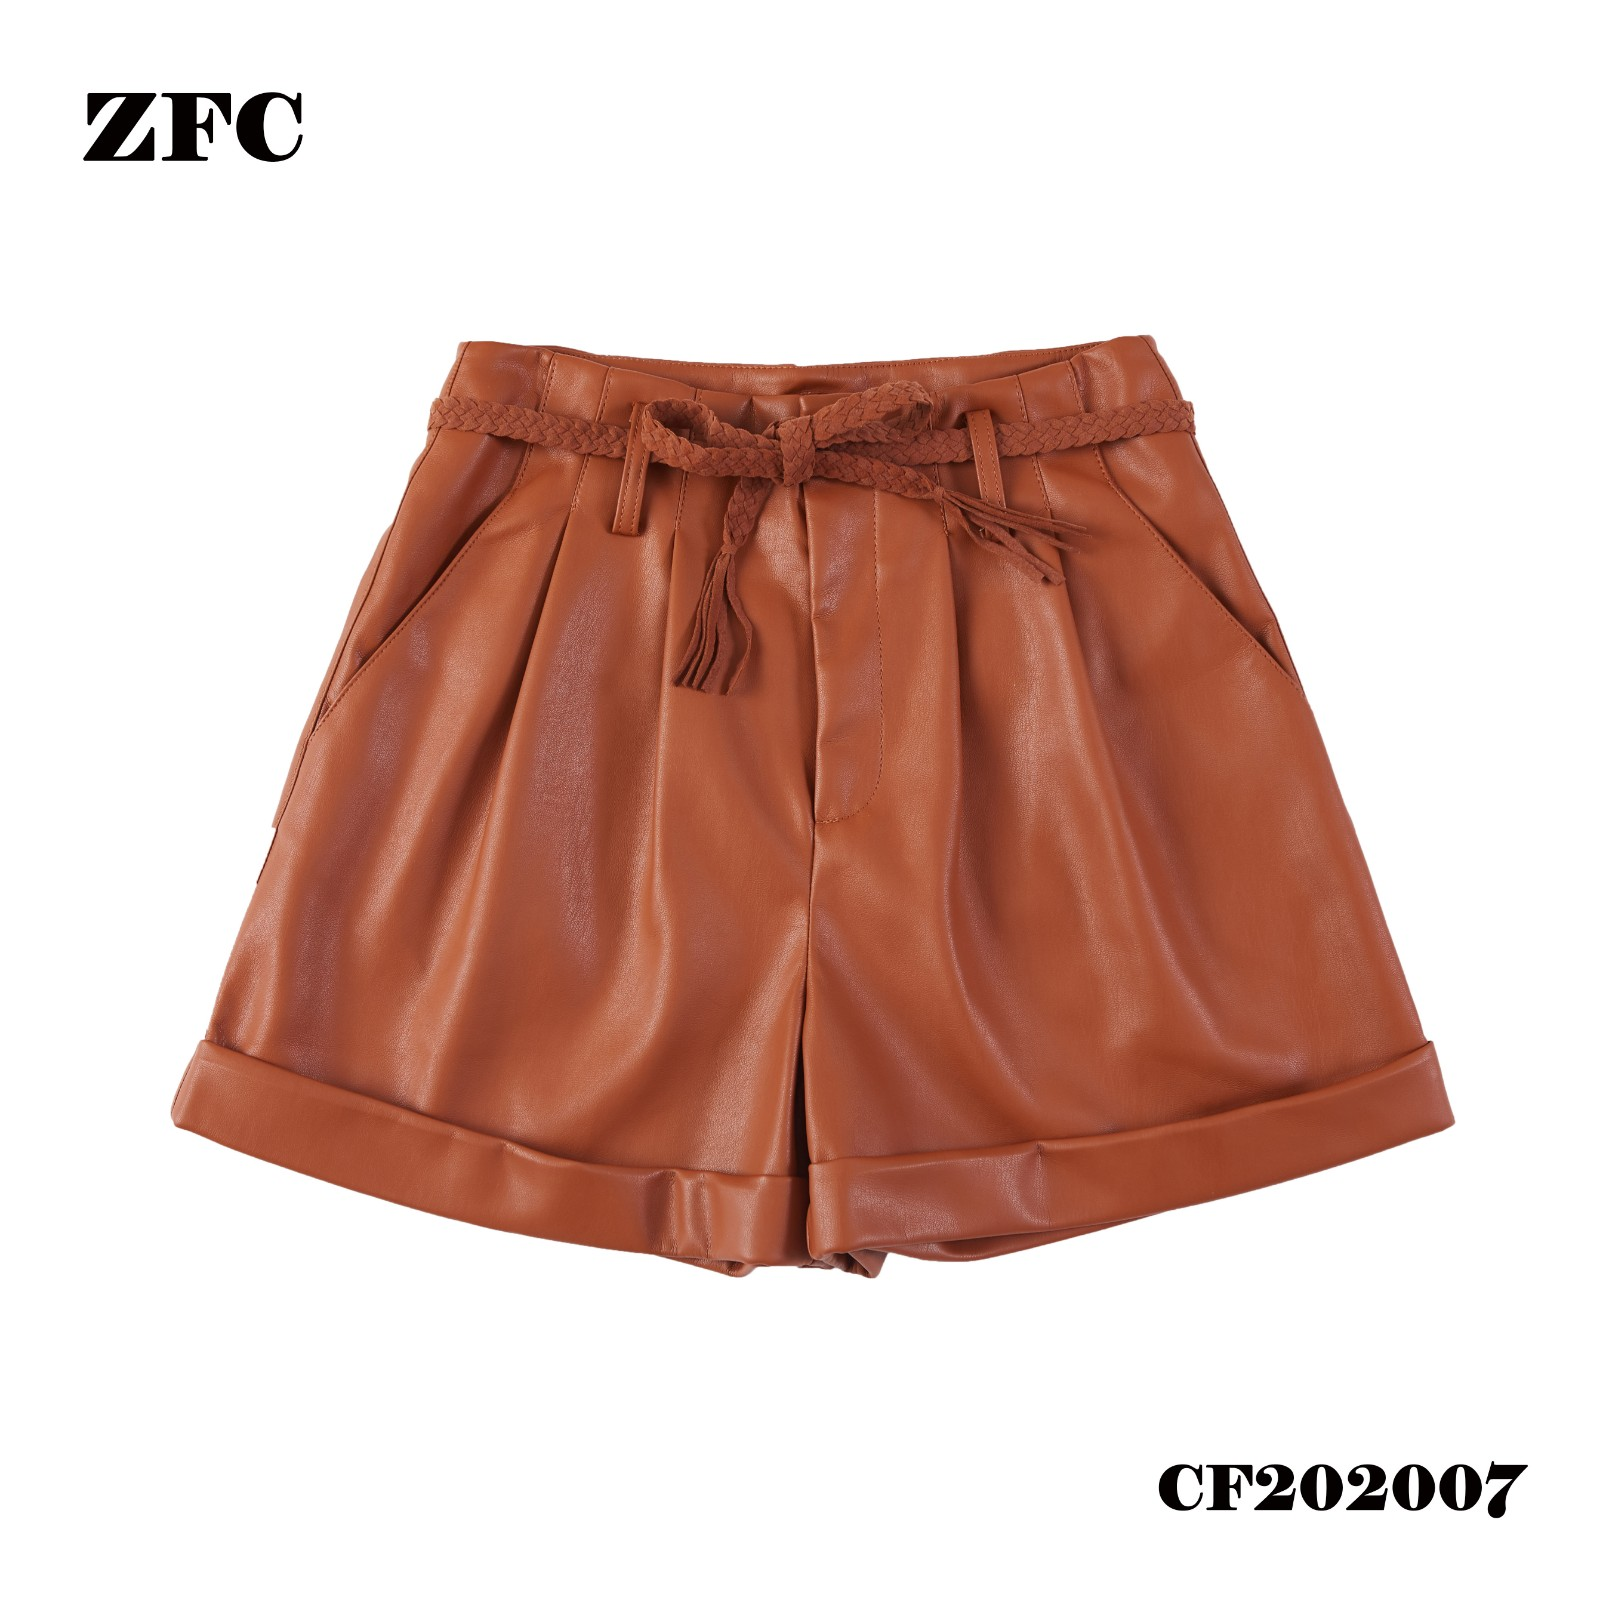 PU shorts for ladies